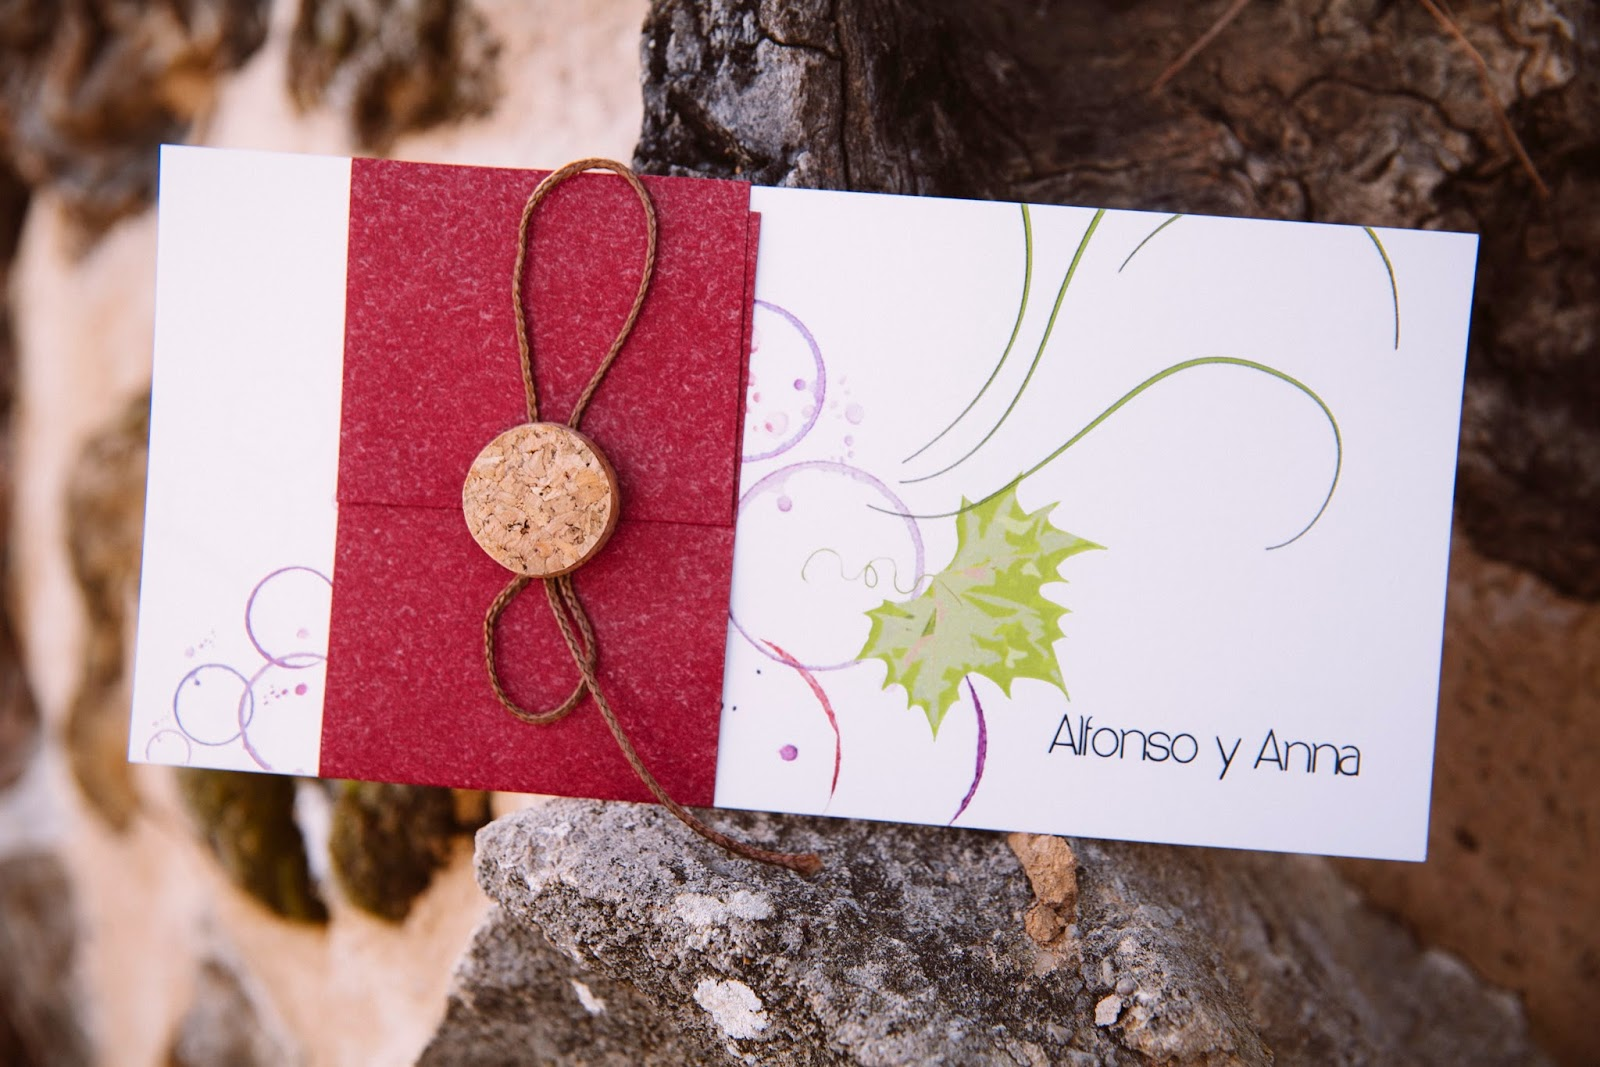 invitaciones boda originales viñedo vineyard vino corcho invitation wedding cork vineyard